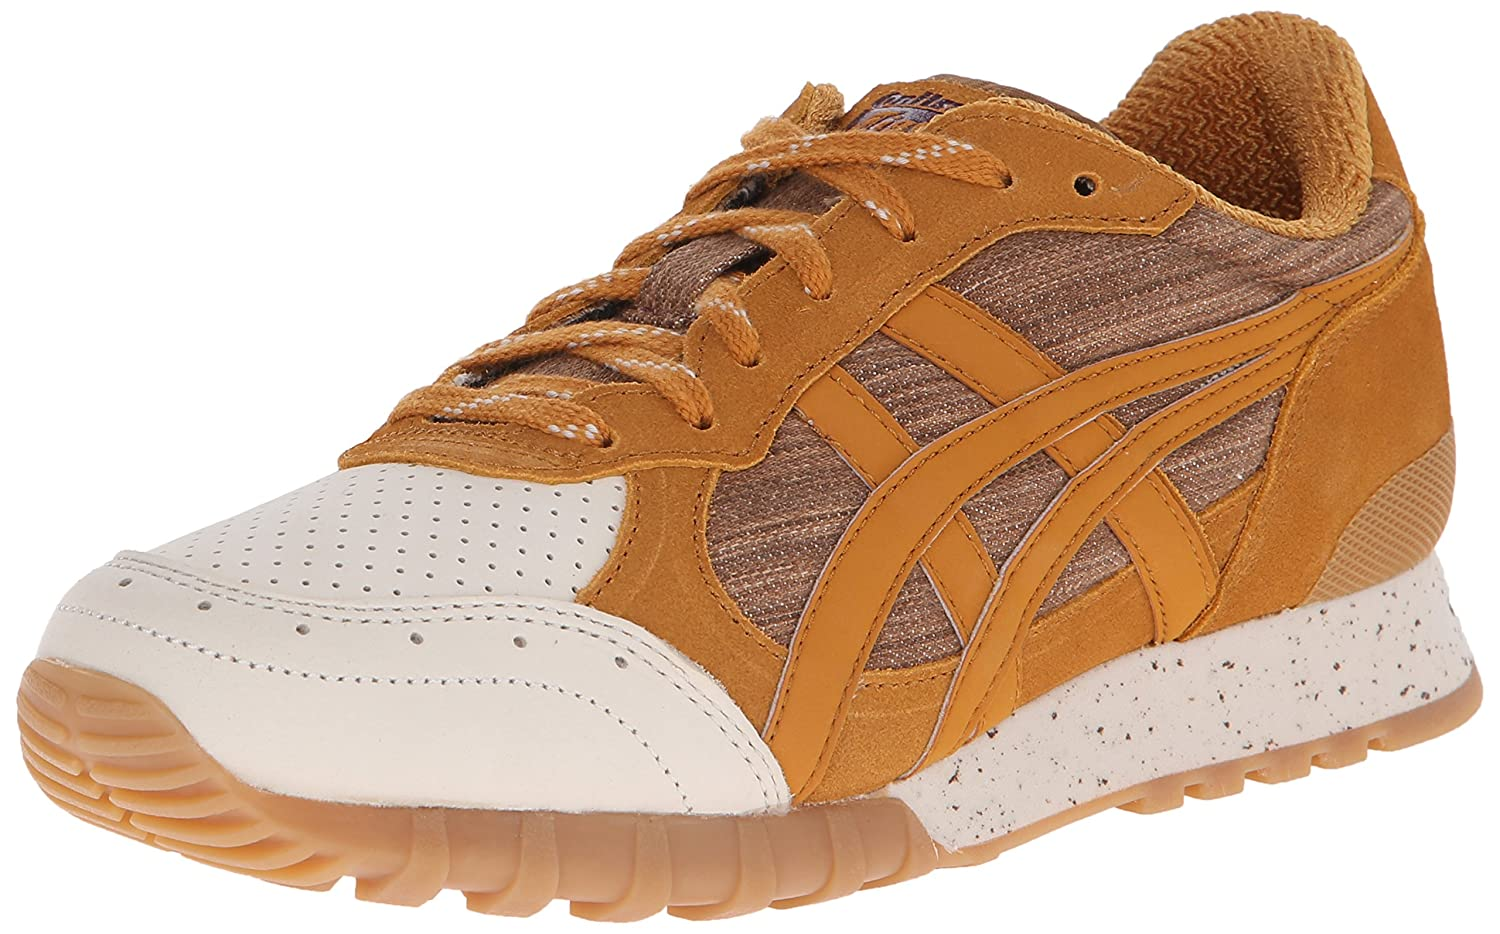 Onitsuka Tiger Colorado Eighty-Five Fashion Sneaker B00PUZC5R6 6.5 Men's M US/8 Women's M US|Tan/Tan